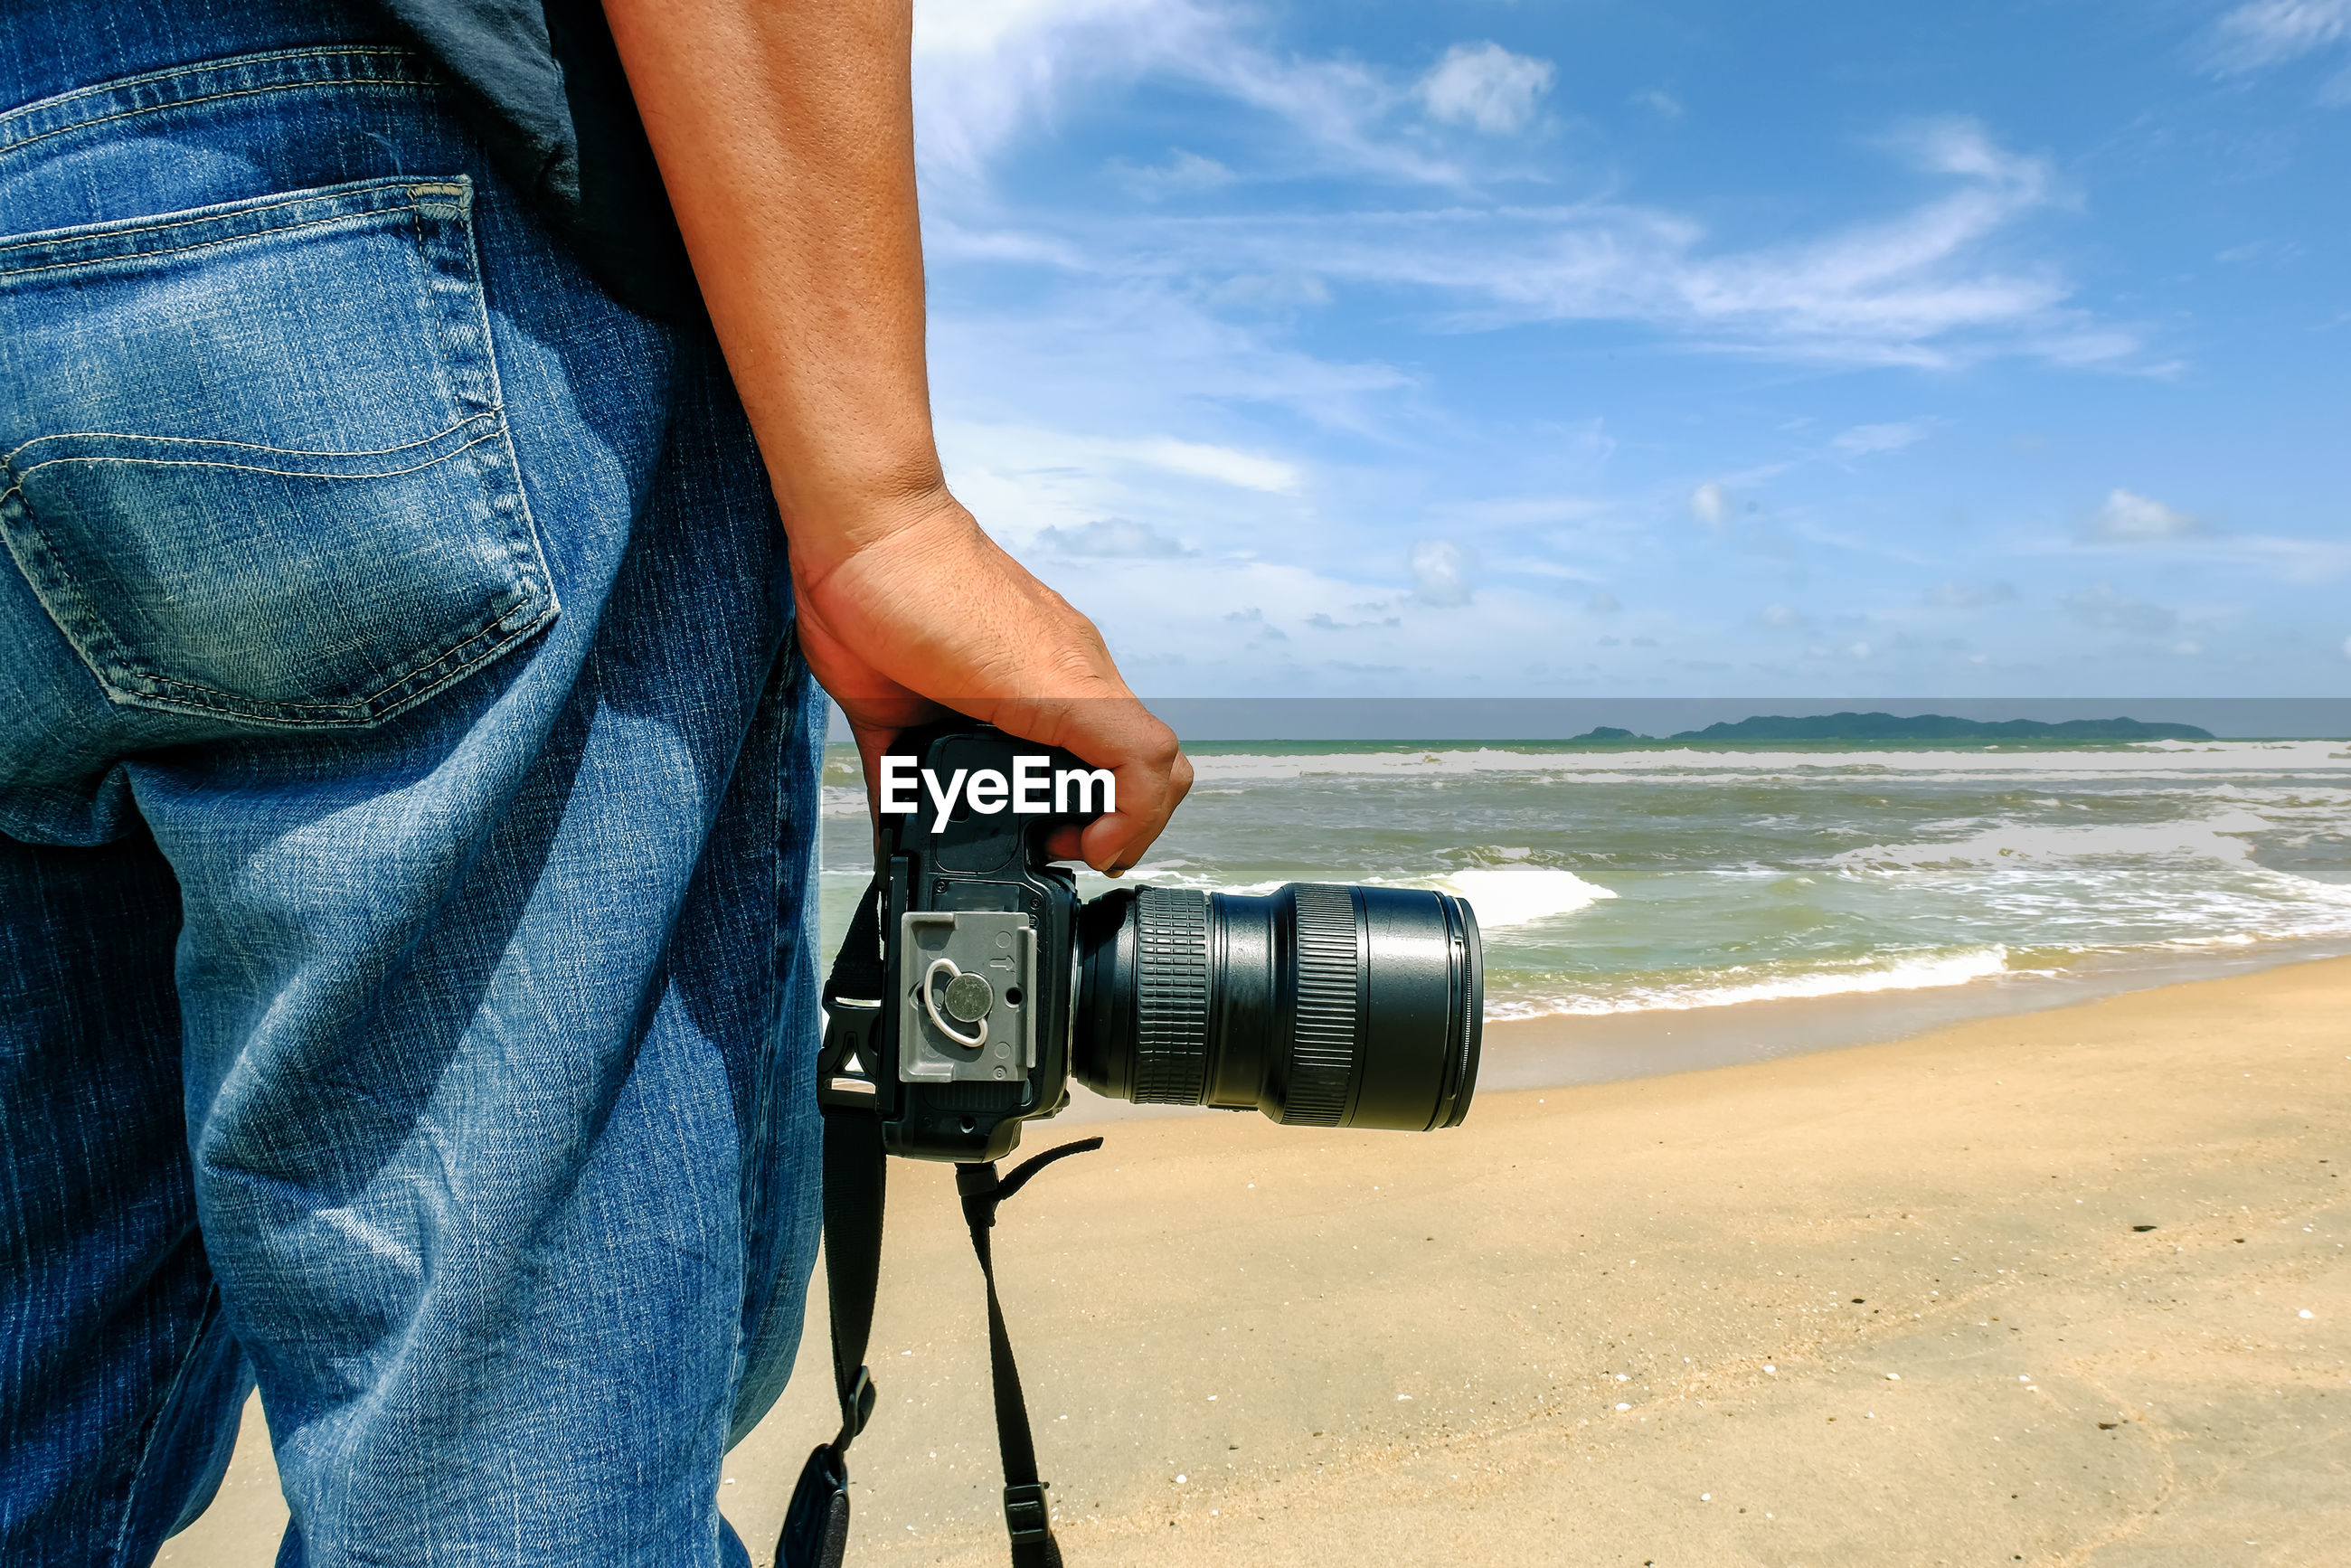 Man holding camera on beach